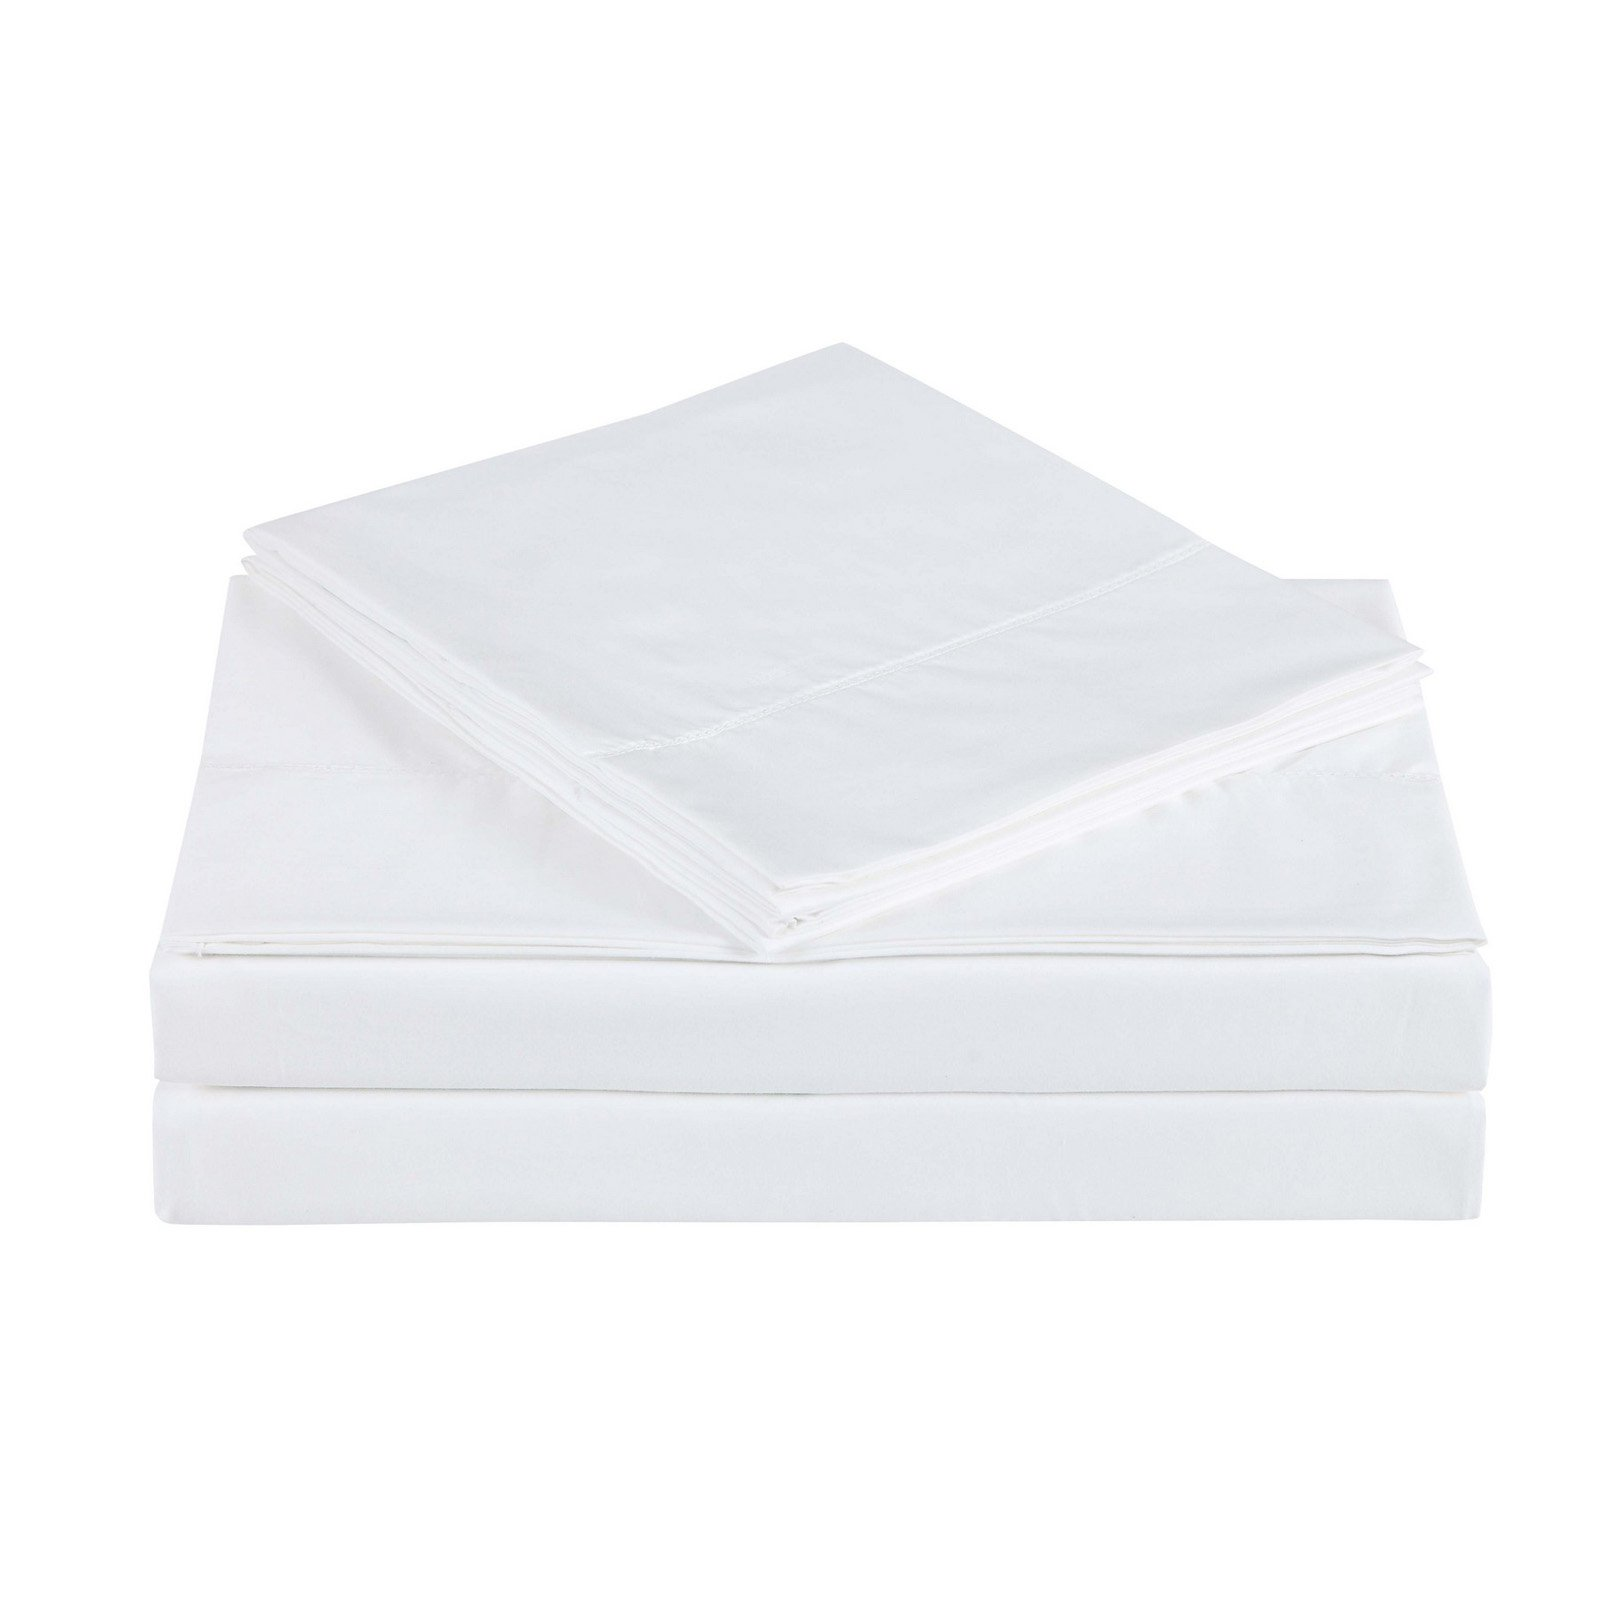 Costco Charisma Sheets White: 610 Thread Count Cotton Solid Bright White Queen Sheet Set